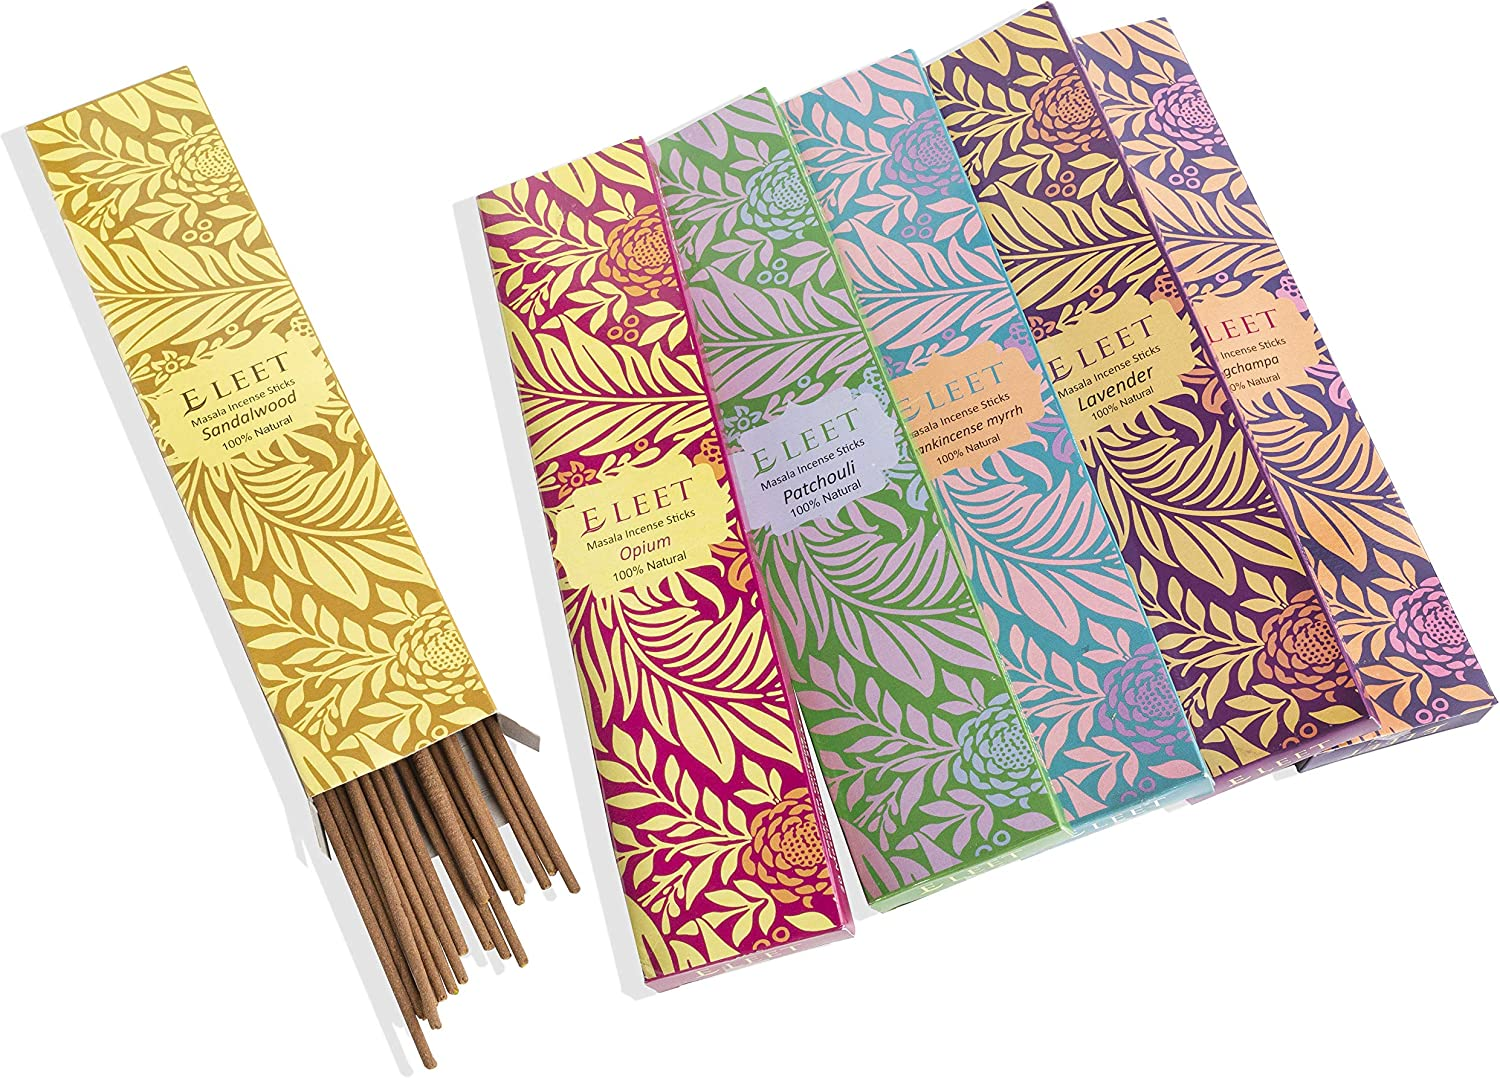 Eleet Hand Rolled Masala Incense Sticks - 20x6 Variety Pack Contains Patchouli Lavender Nag Champa Sandalwood Opium Frankincense-Myrrh 100% Natural Made in India (Six Beautiful Aromas)